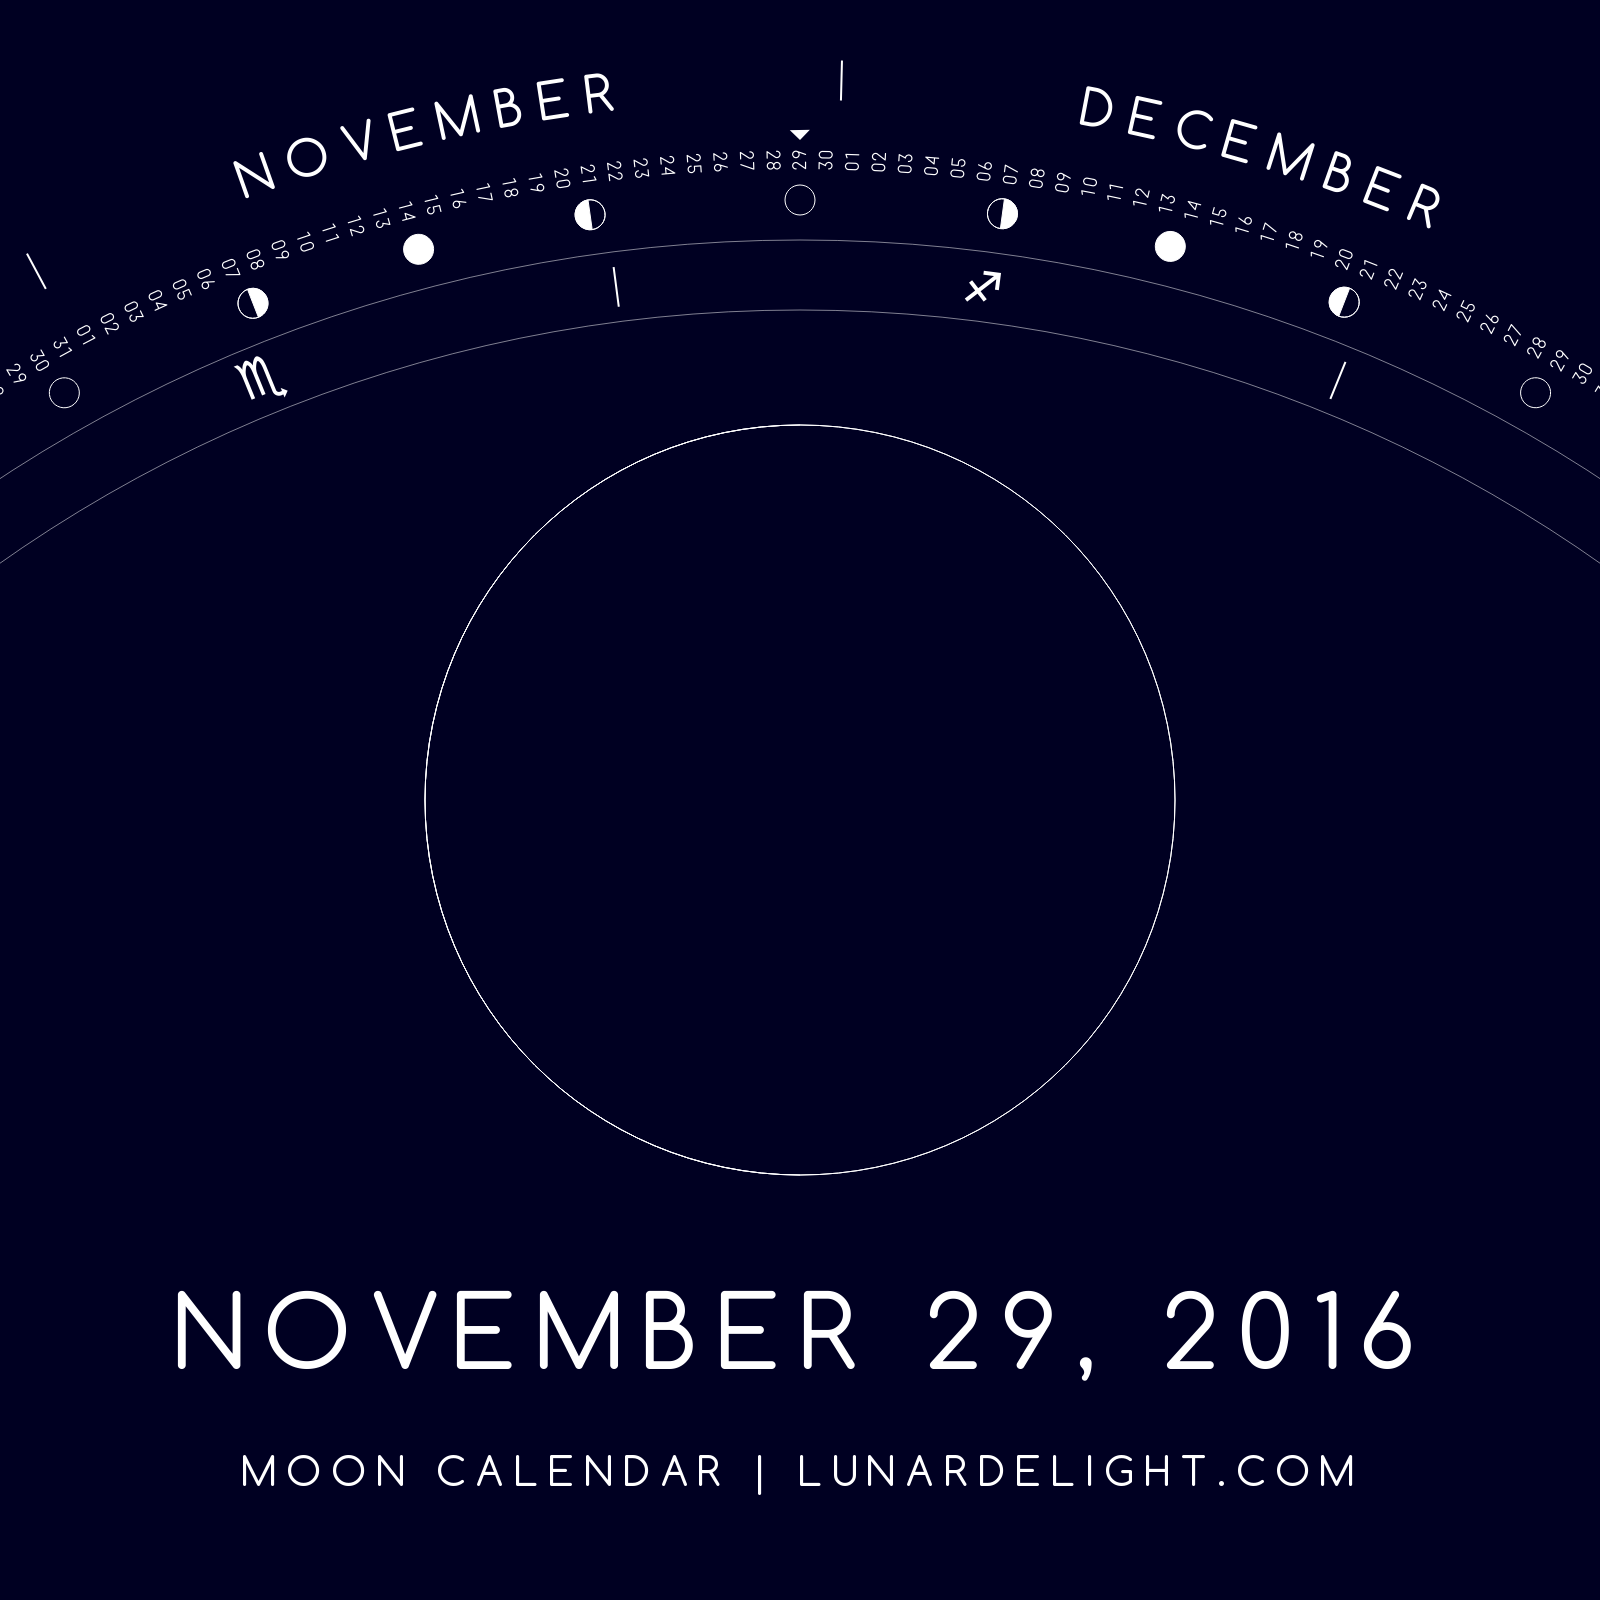 Full Moon and New Moon in November 2019 2